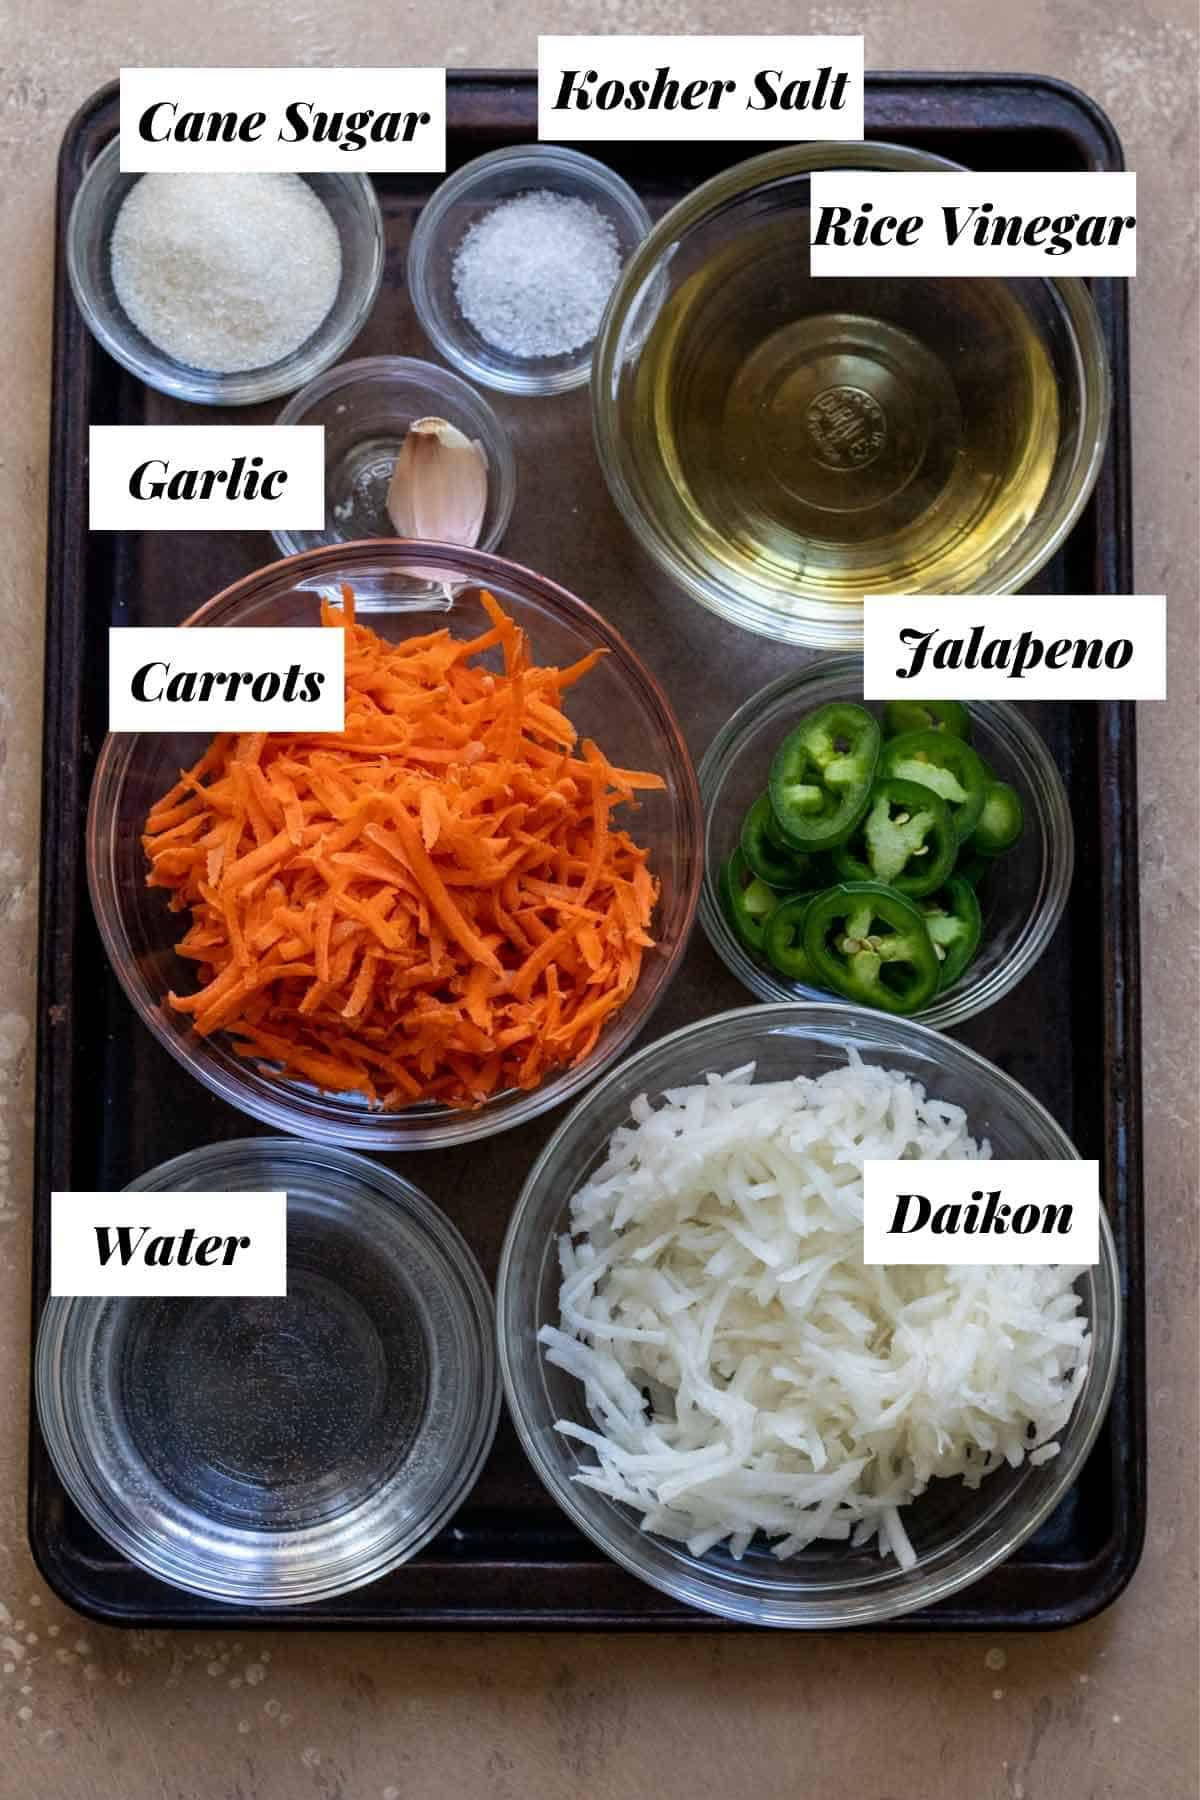 Ingredients needed to make quick pickled vegetables measured into glass bowls on cookie sheet.